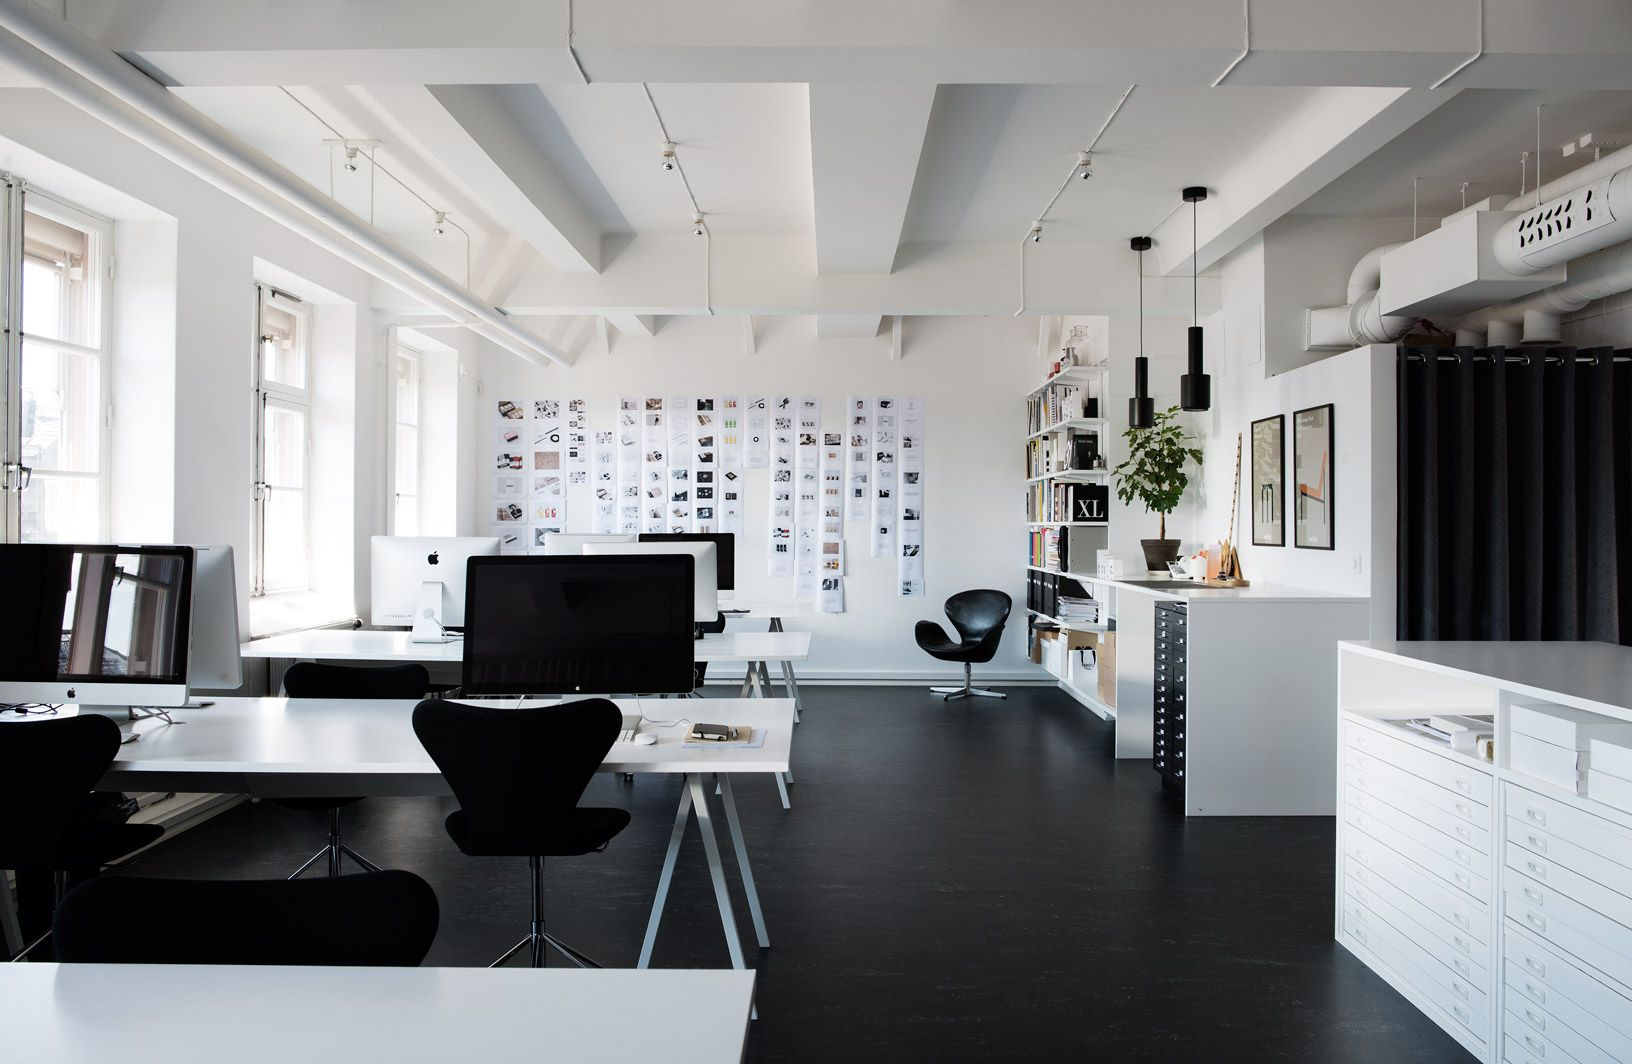 About With Images Studio Interior Design Studio Office